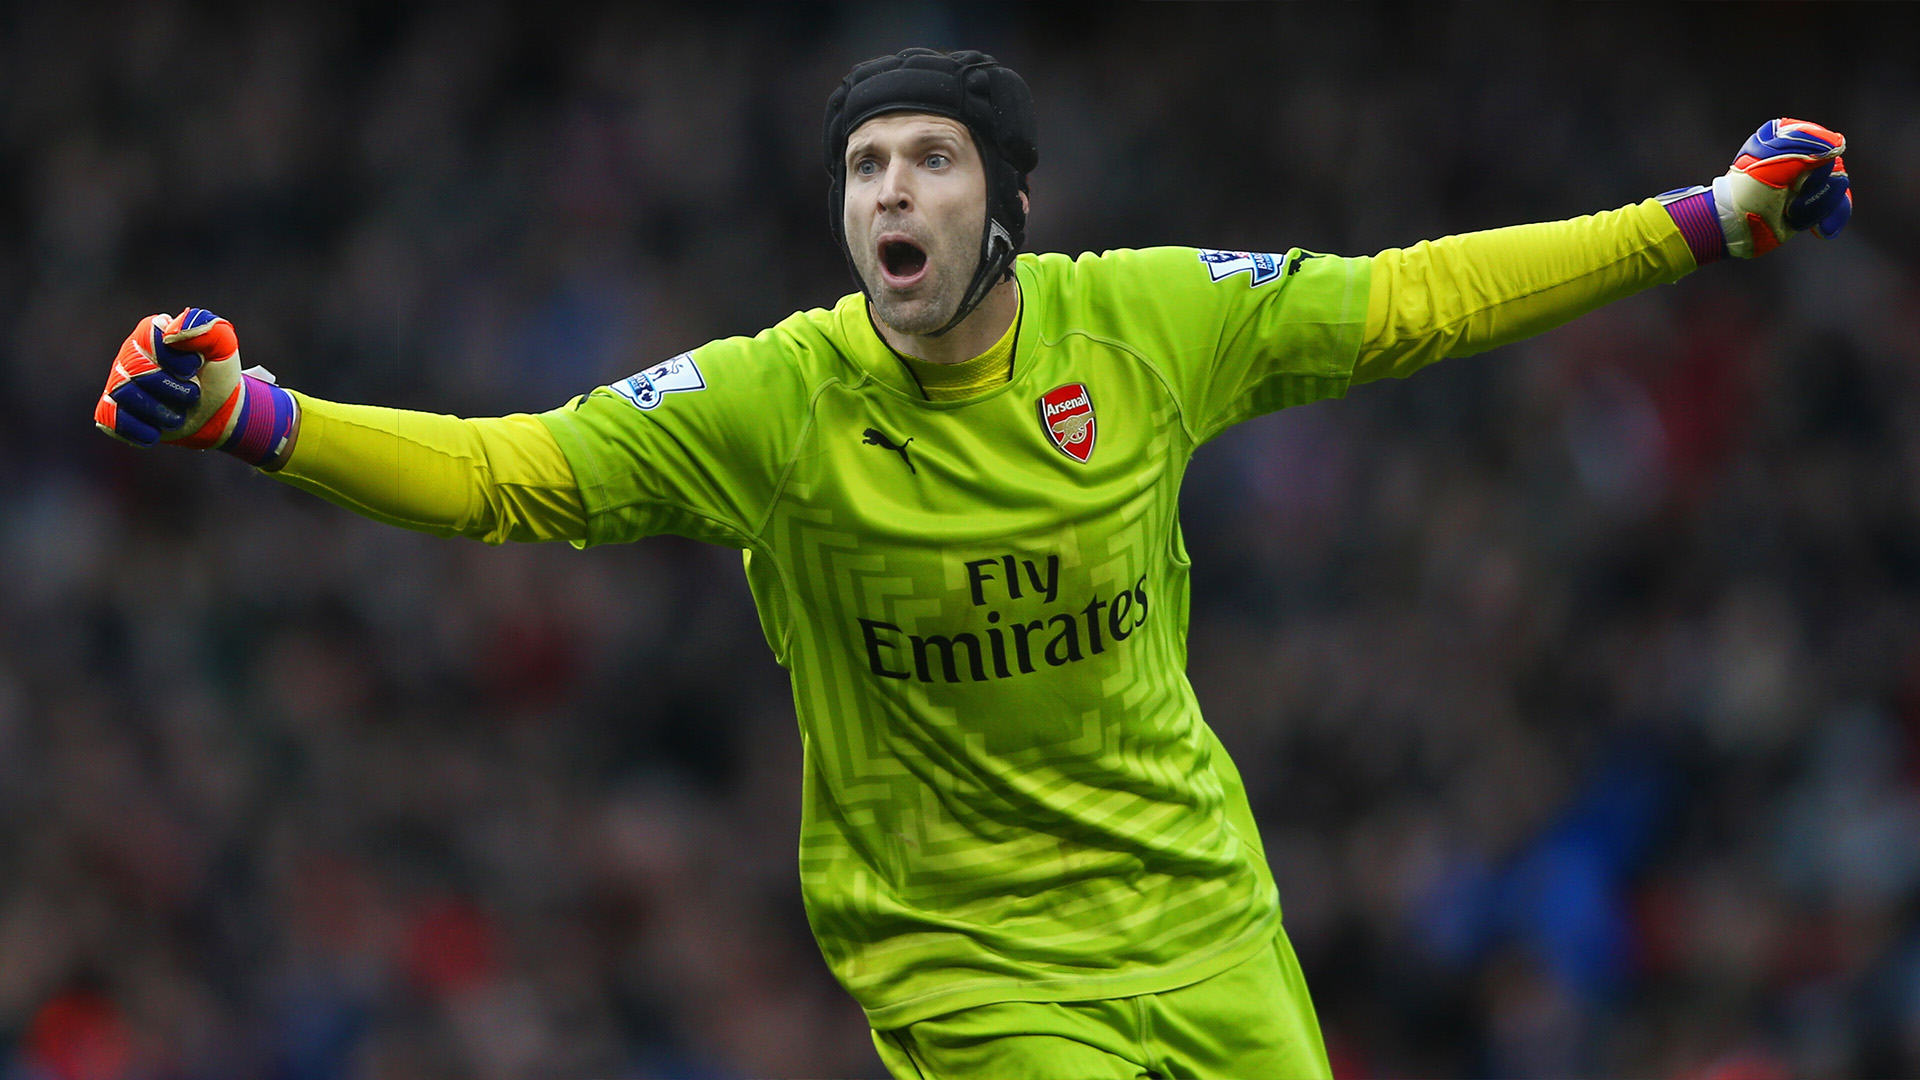 Internet Reacts To A Horror Display From Petr Cech